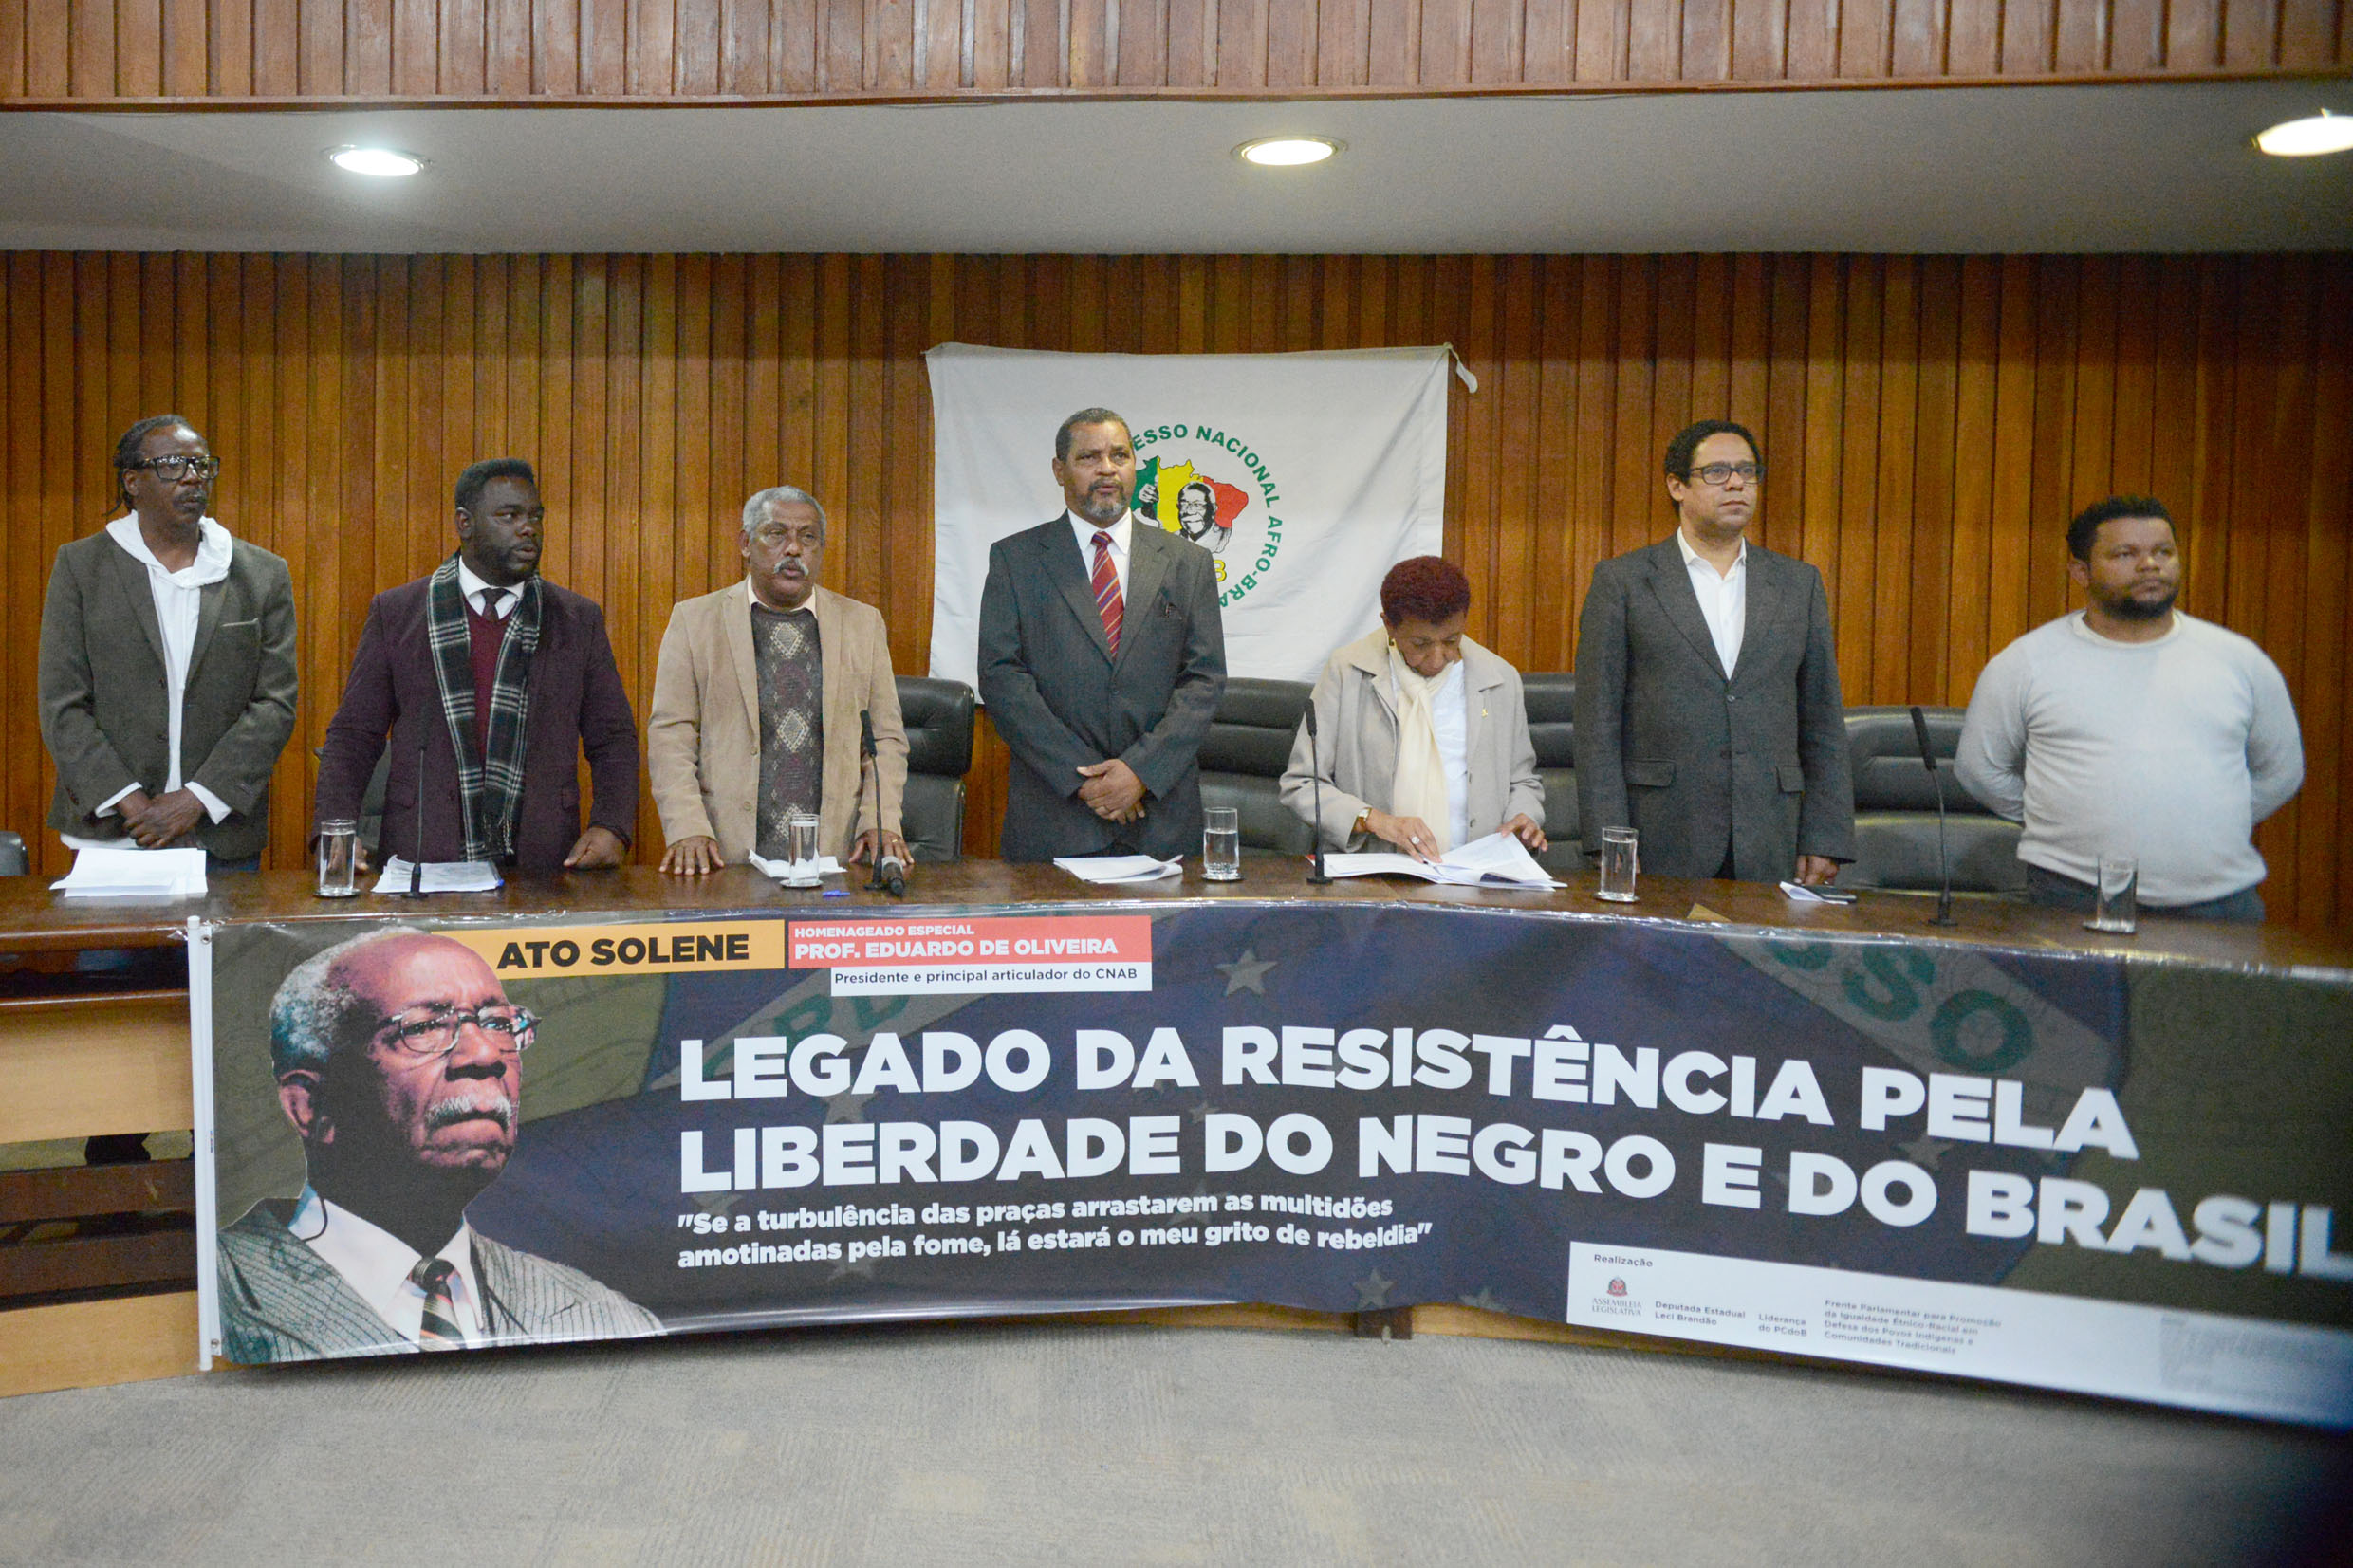 Mesa do evento<a style='float:right' href='https://www3.al.sp.gov.br/repositorio/noticia/N-08-2019/fg238683.jpg' target=_blank><img src='/_img/material-file-download-white.png' width='14px' alt='Clique para baixar a imagem'></a>